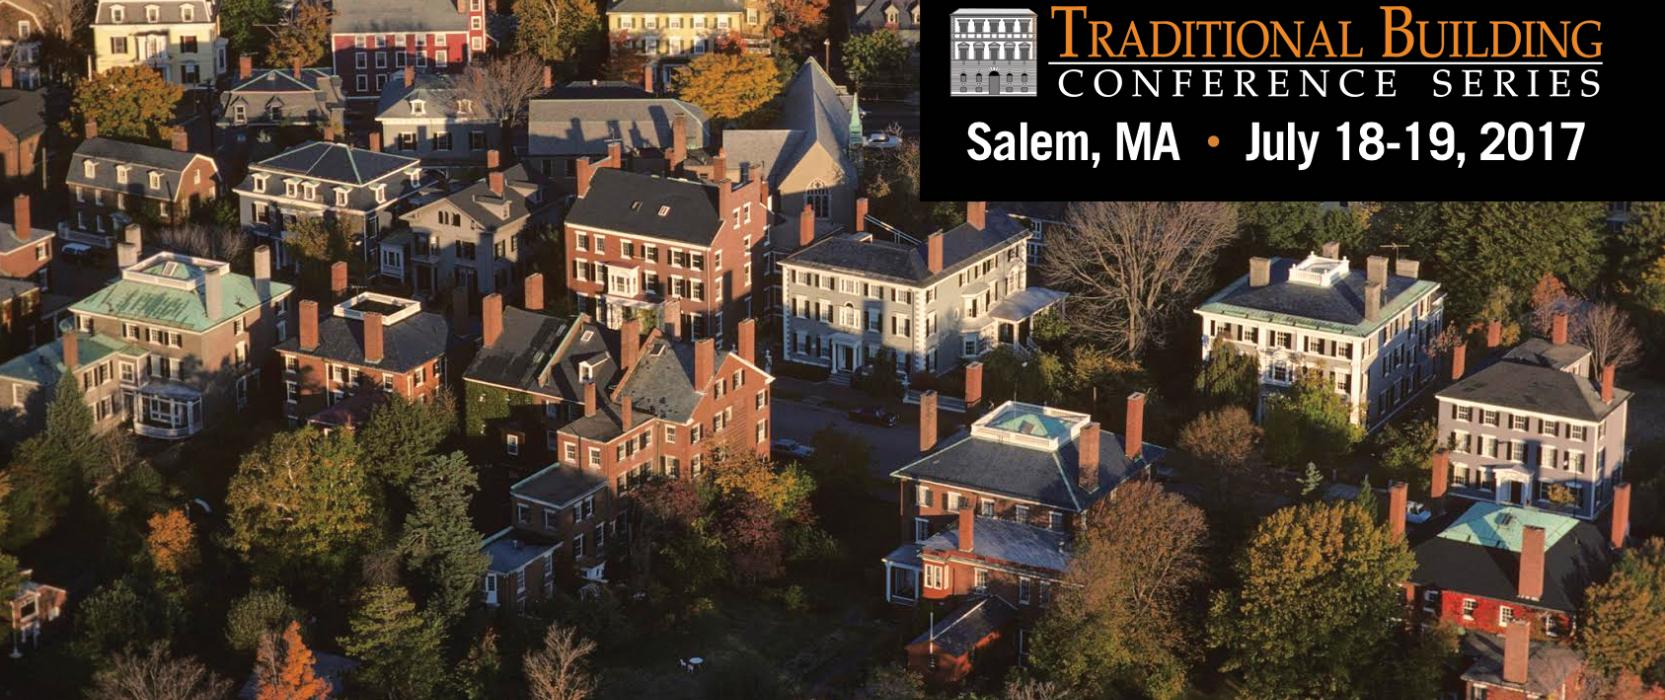 Traditional Building Conference Series – Salem, MA